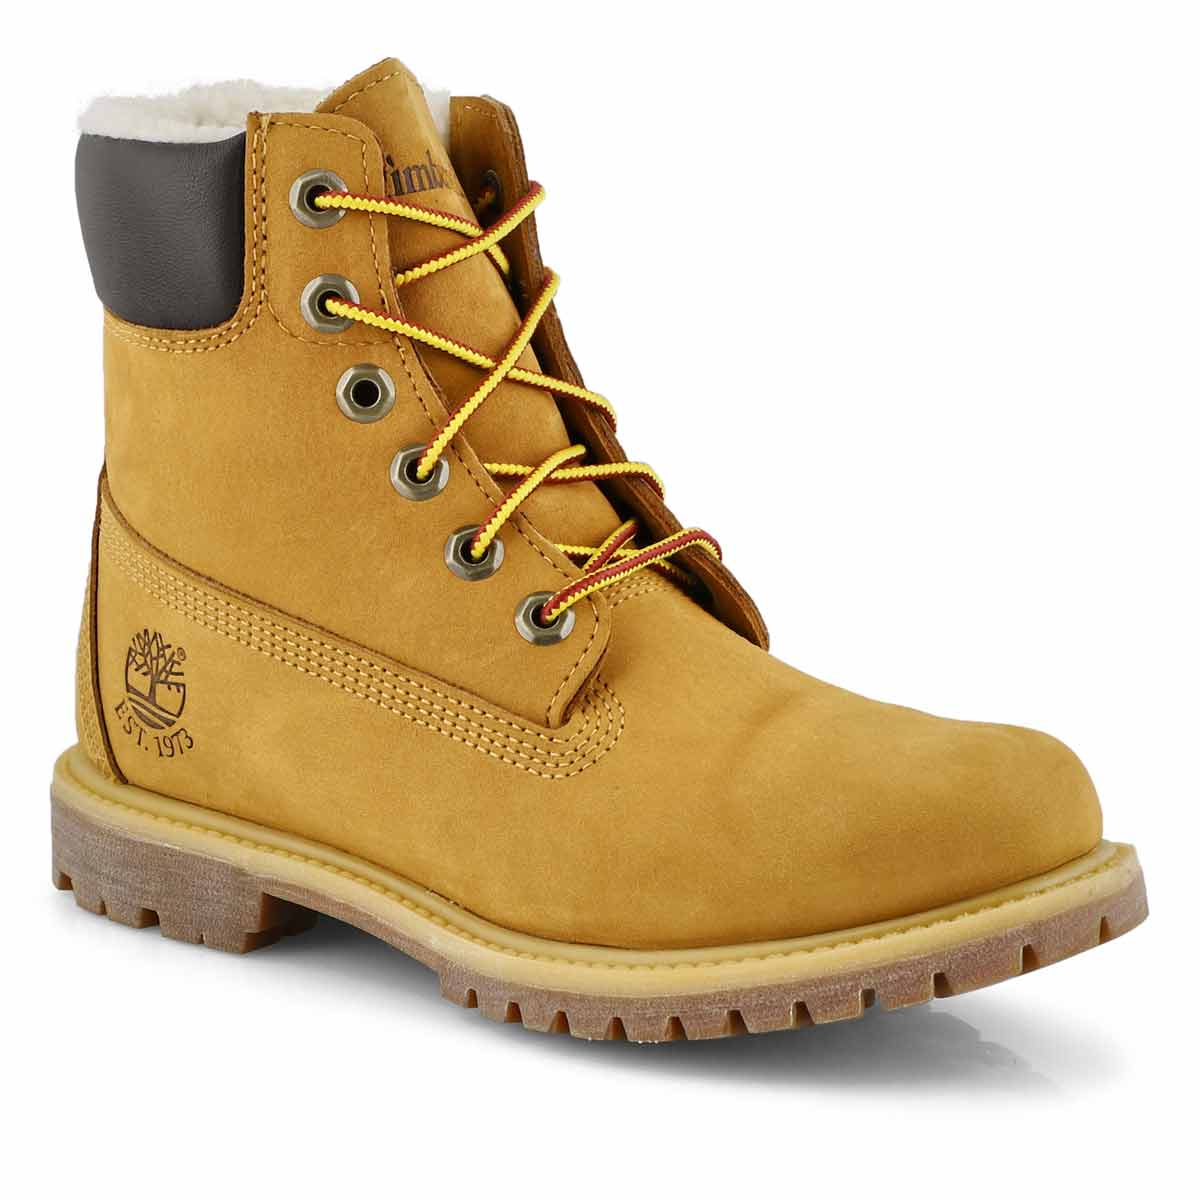 "Women's PREMIUM 6"" wheat waterproof ankle boots"